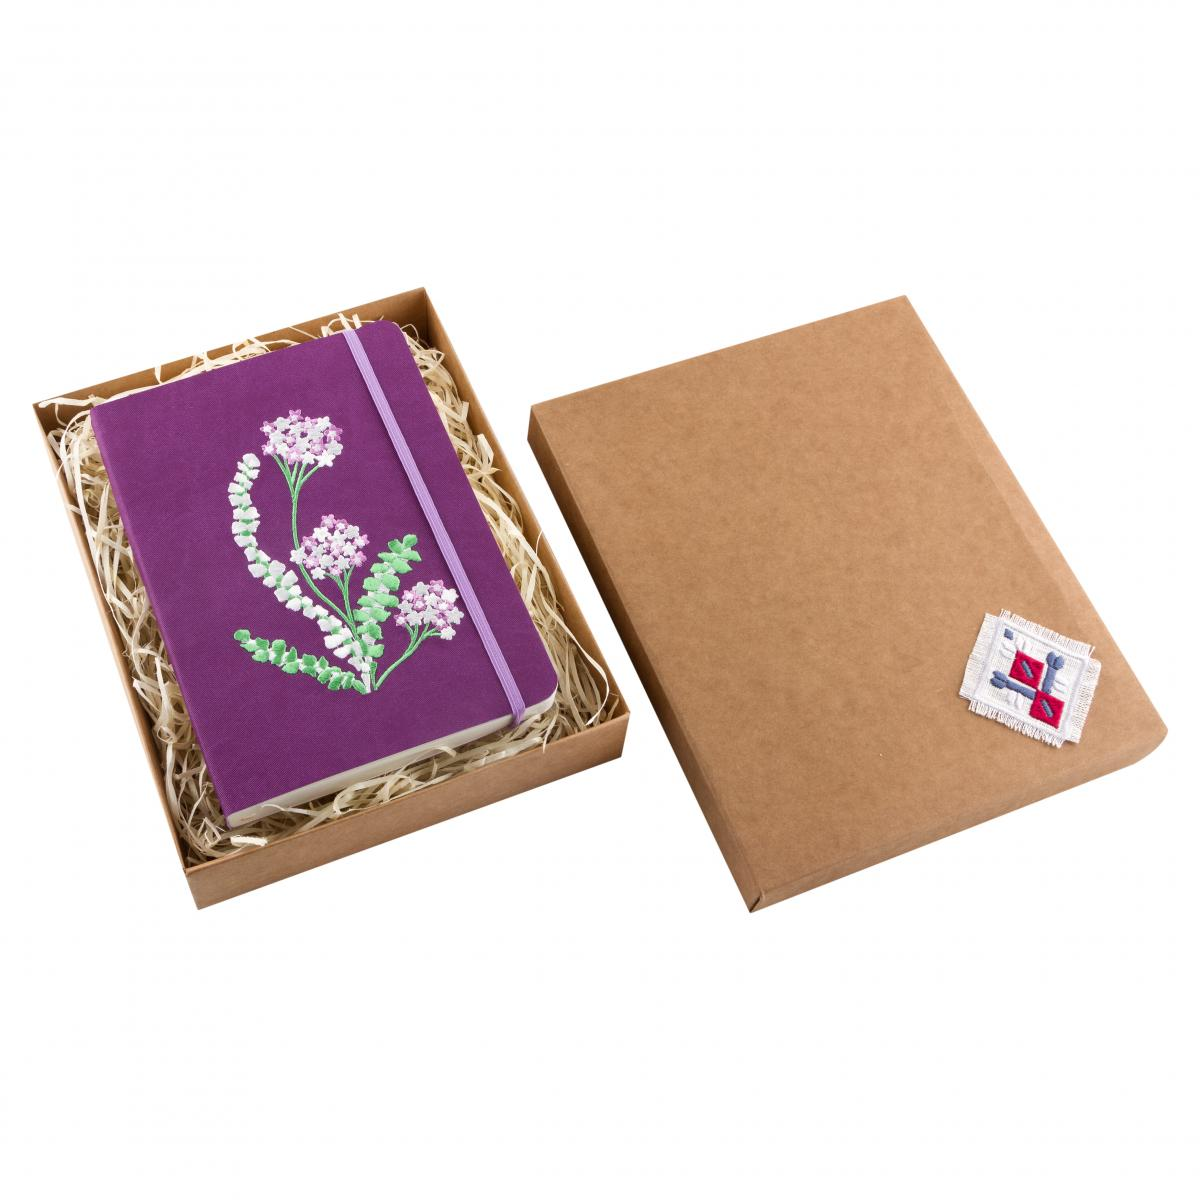 Violet notebook with embroidered flowers. Photo №3. | Narodnyi dim Ukraine